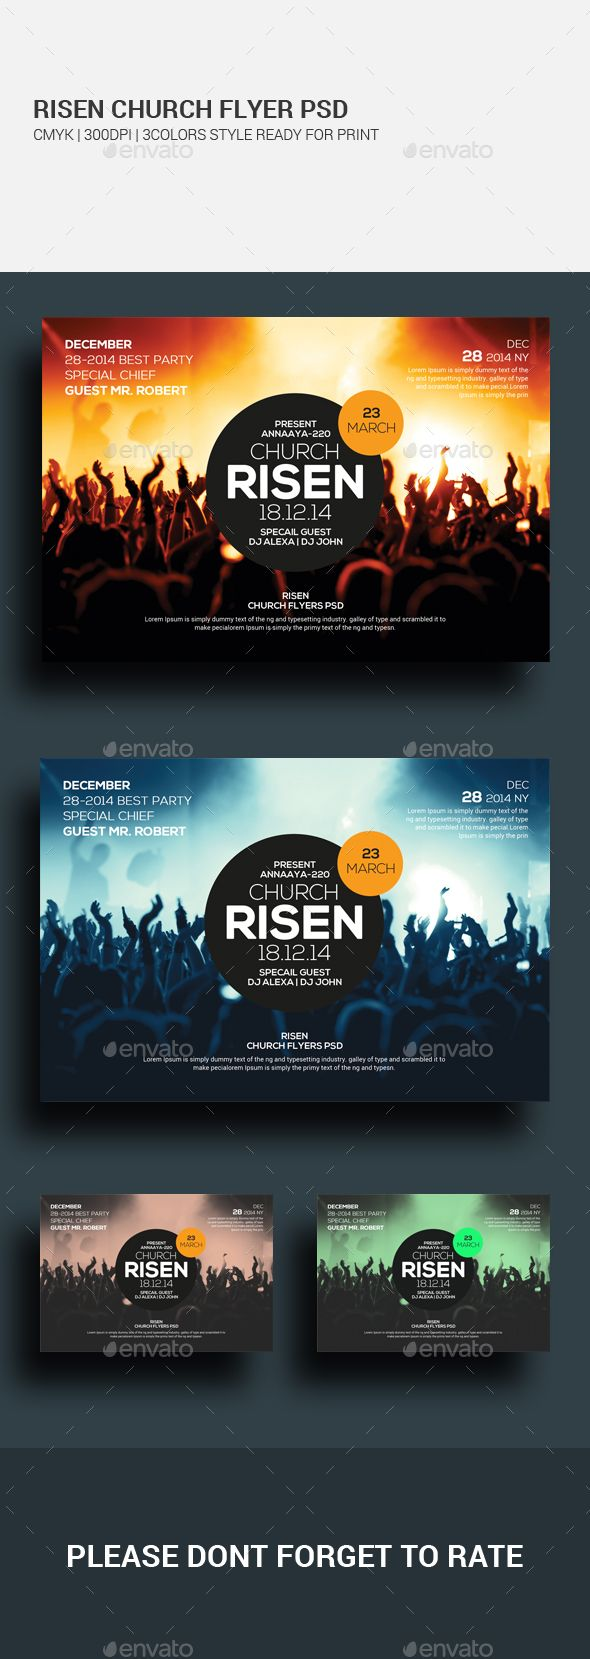 Easter Sunday Church PSD Template Set. Download here…